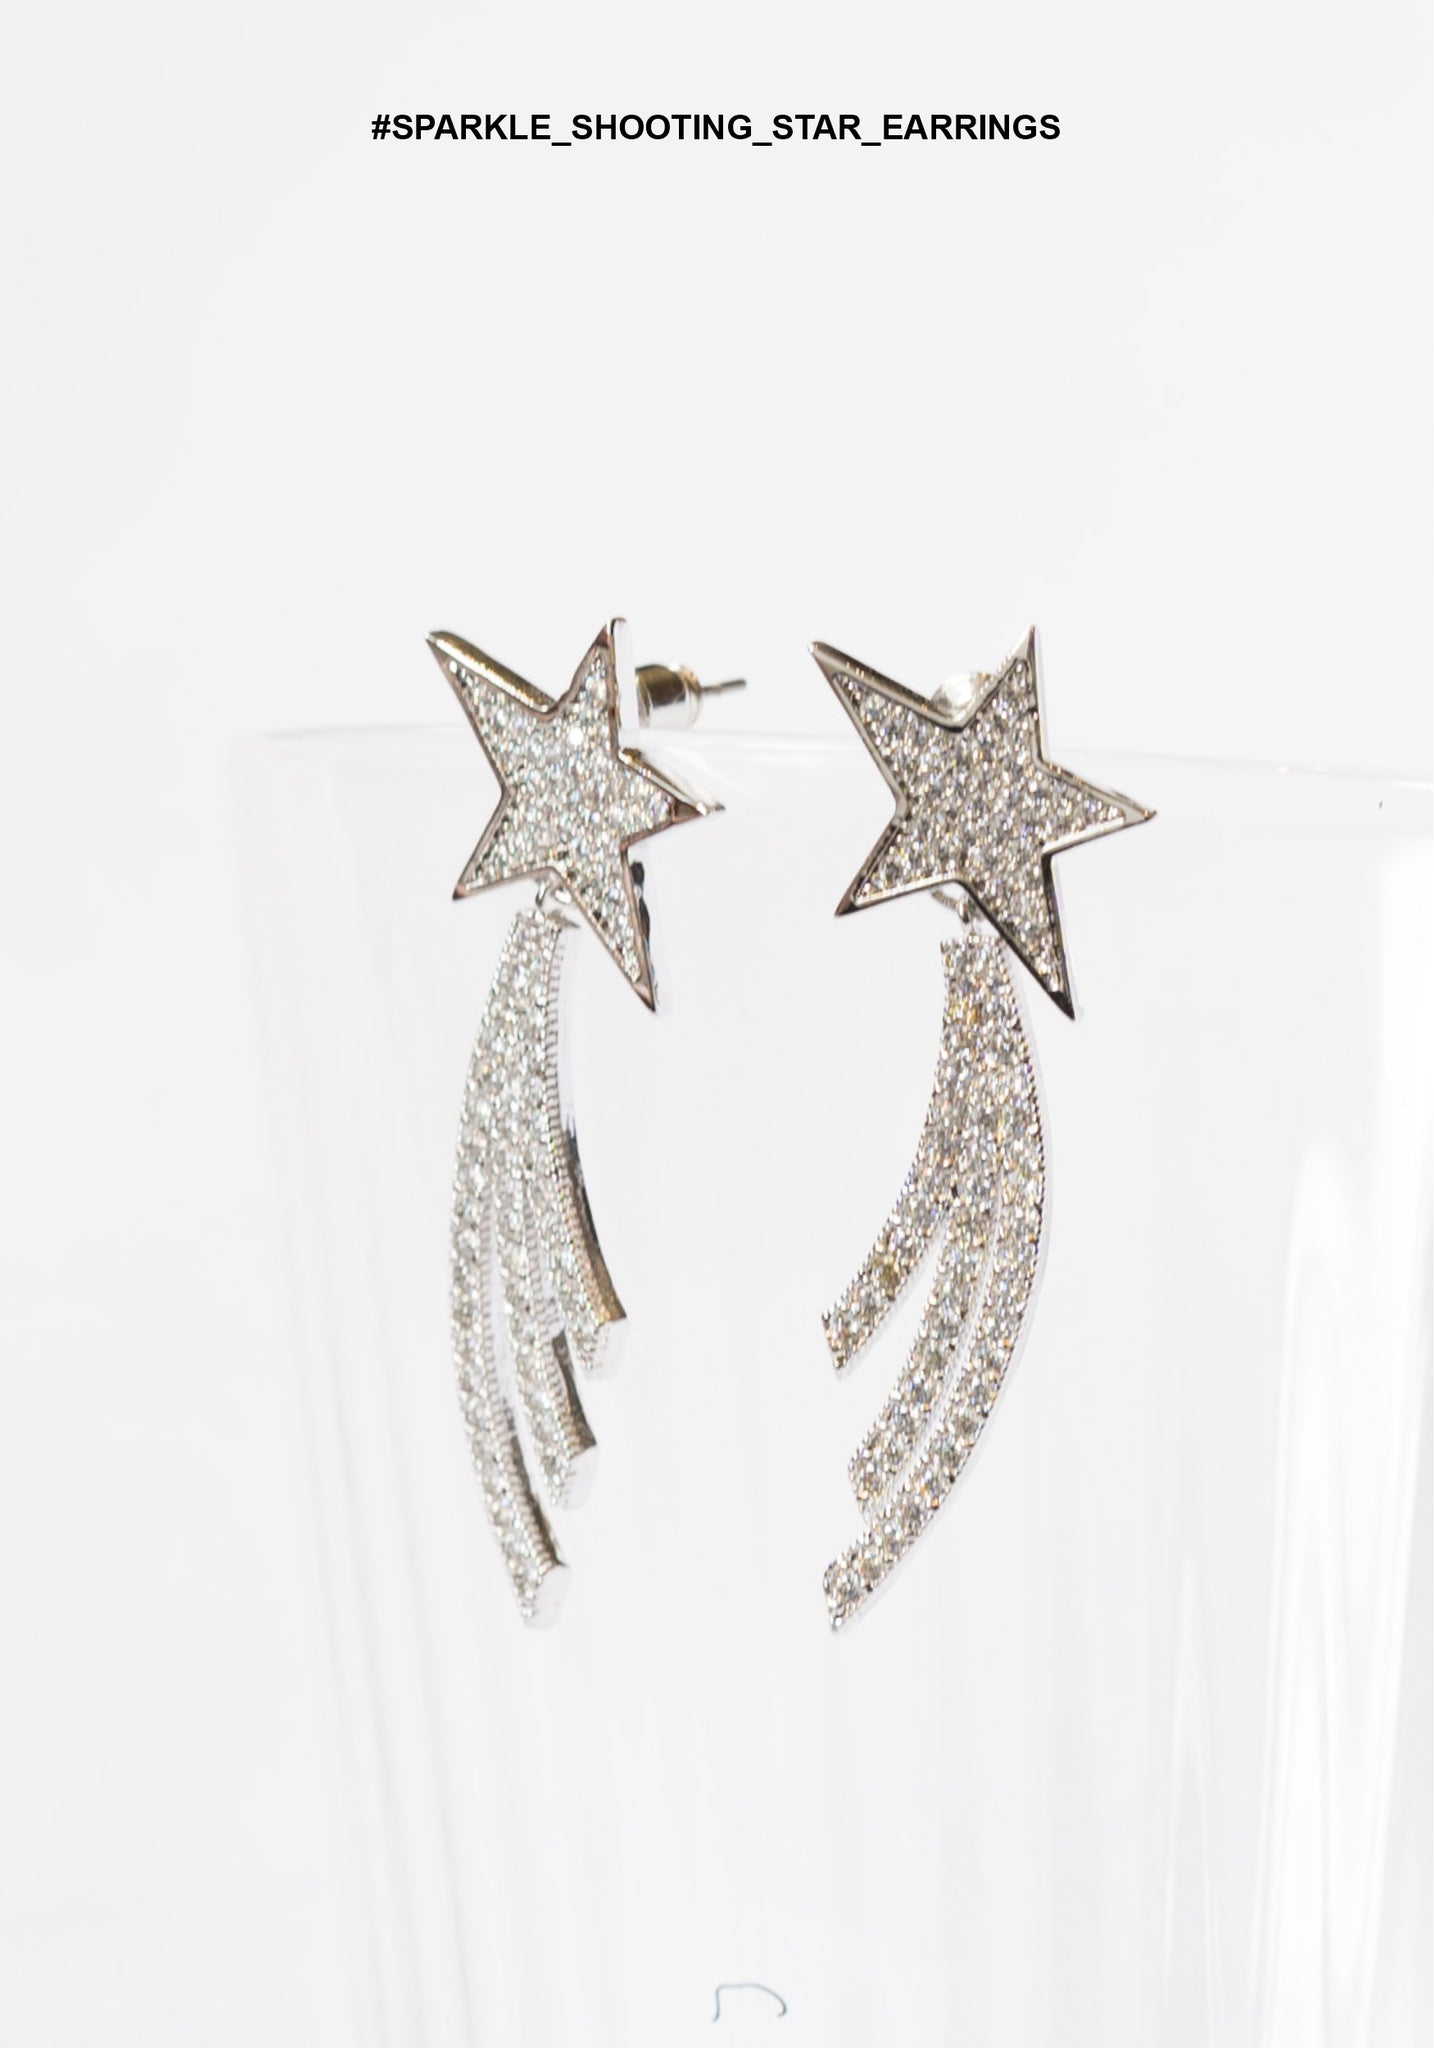 Sparkle Shooting Star Earrings - whoami